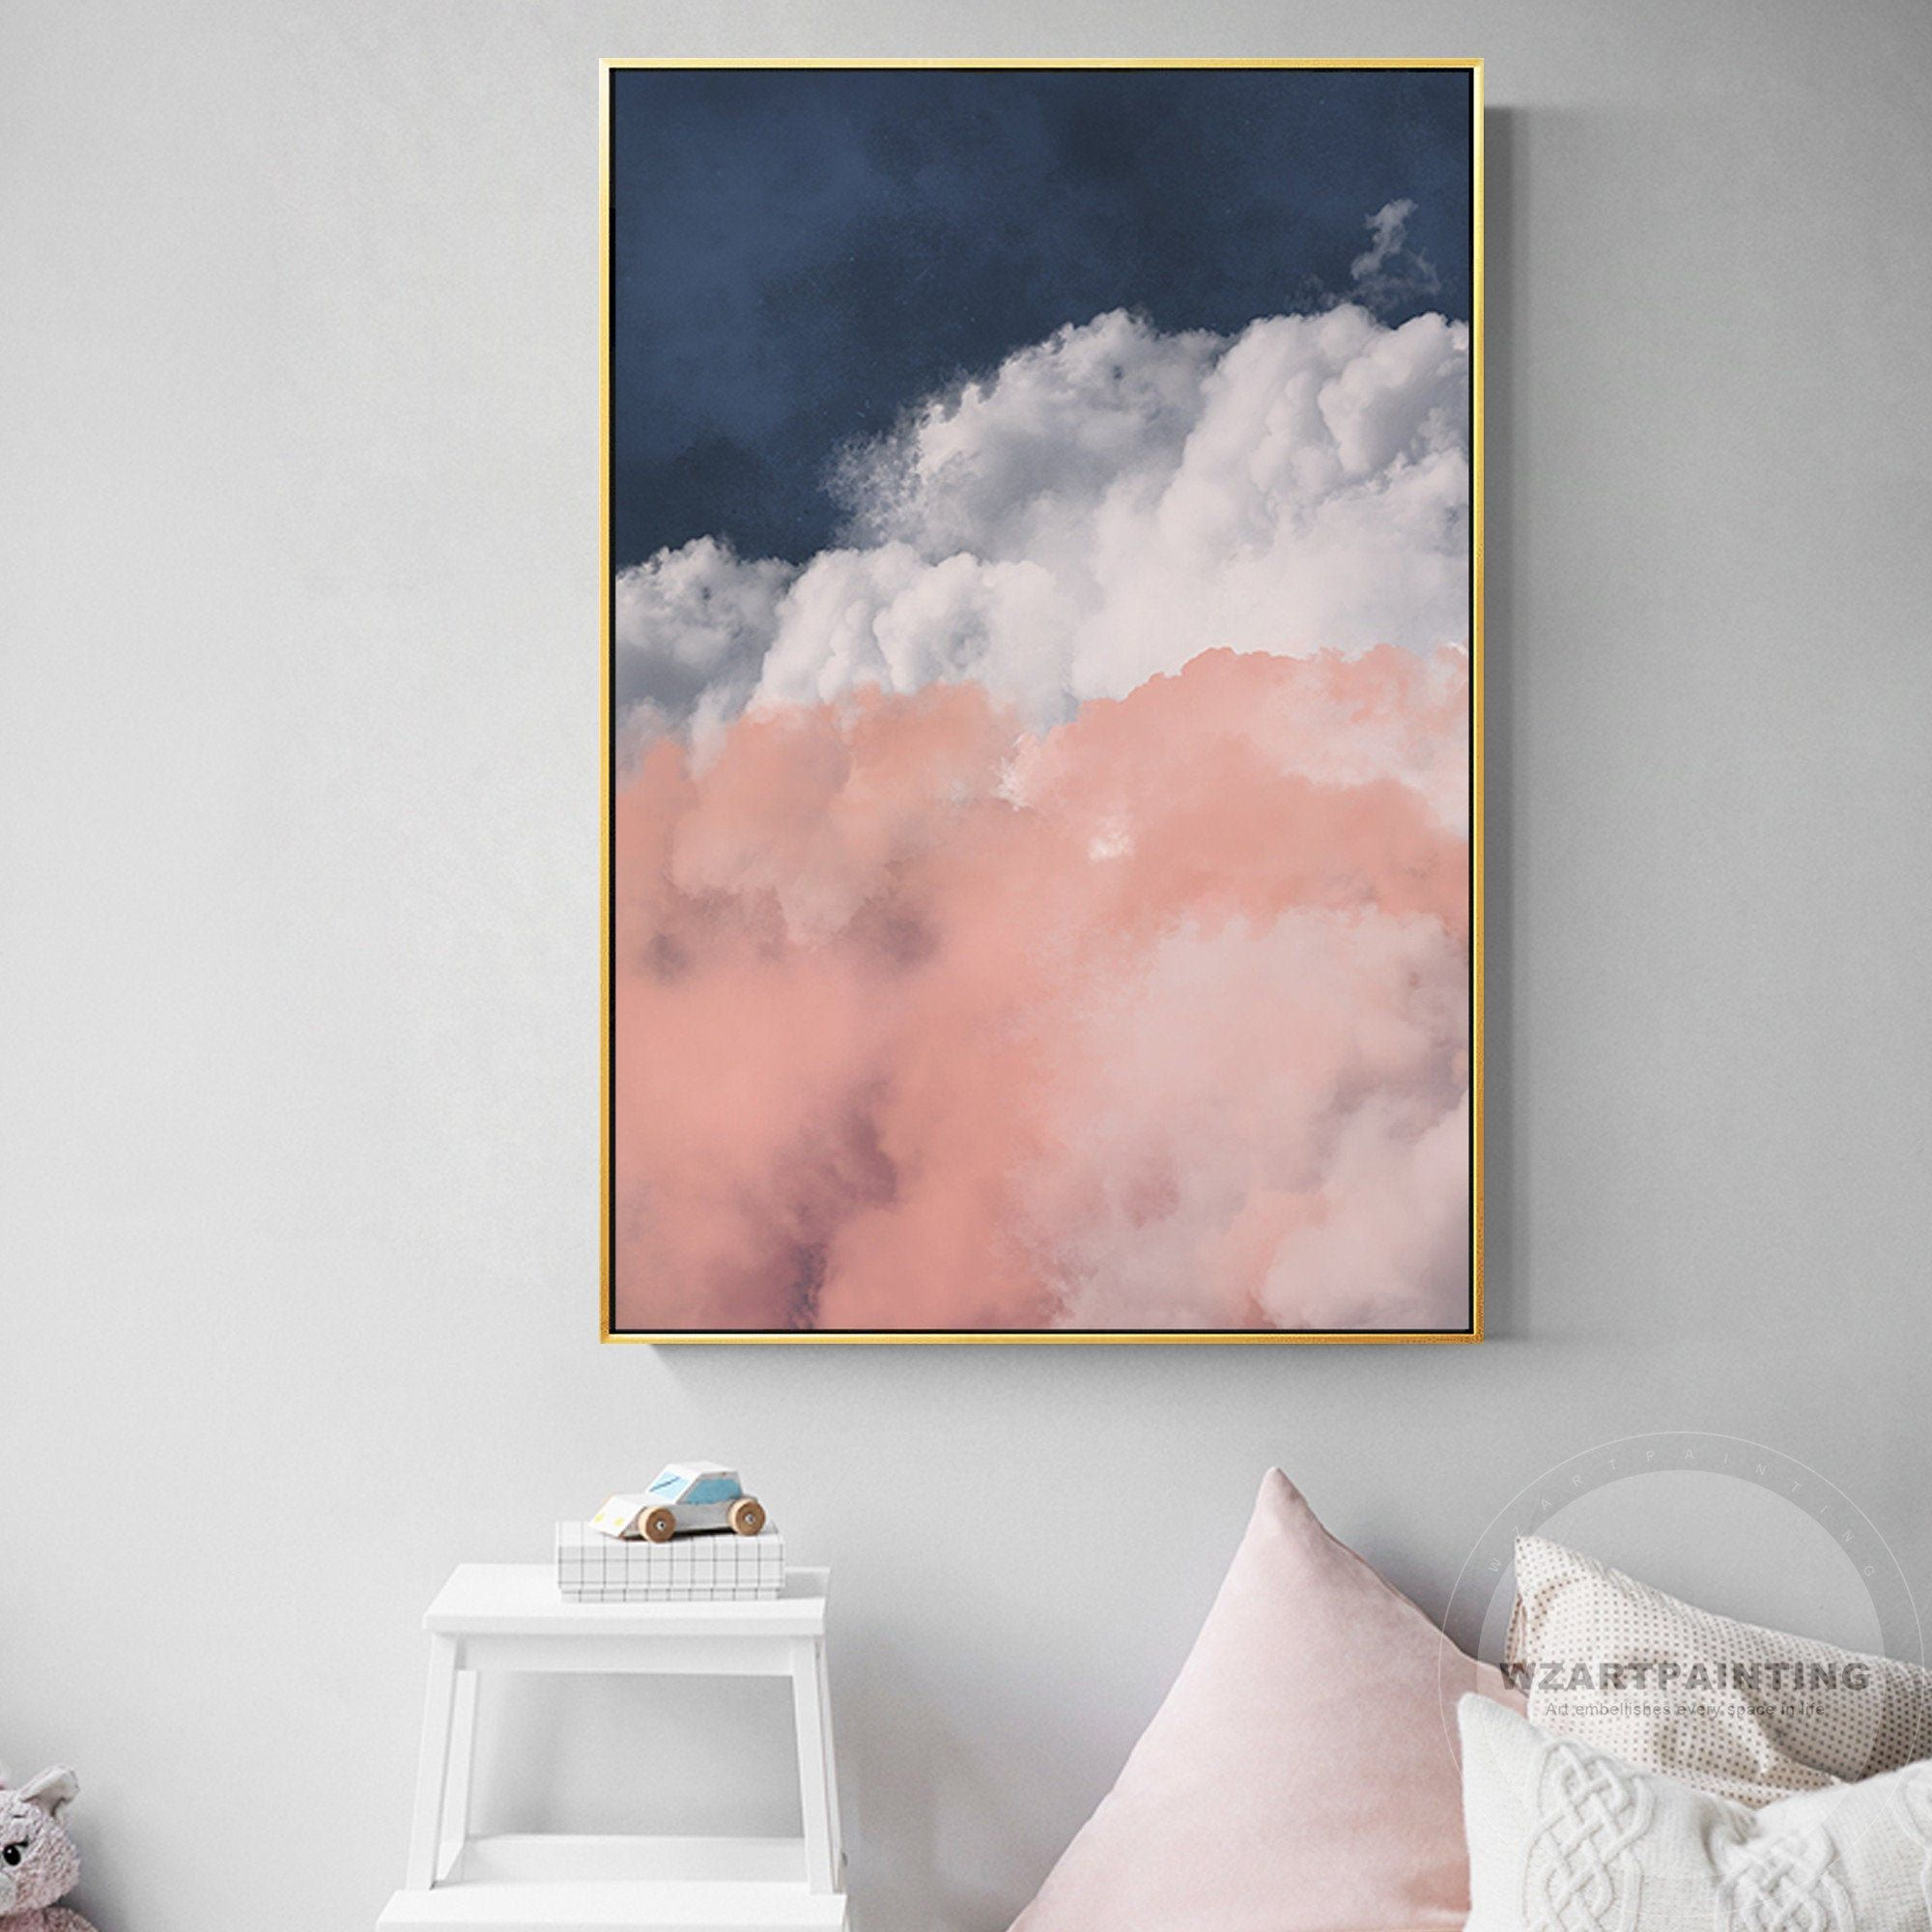 Framed Wall Art Modern Abstract Pink Navy Blue White Cloud Etsy Pink Abstract Painting Wall Art Pictures Pink Wall Art